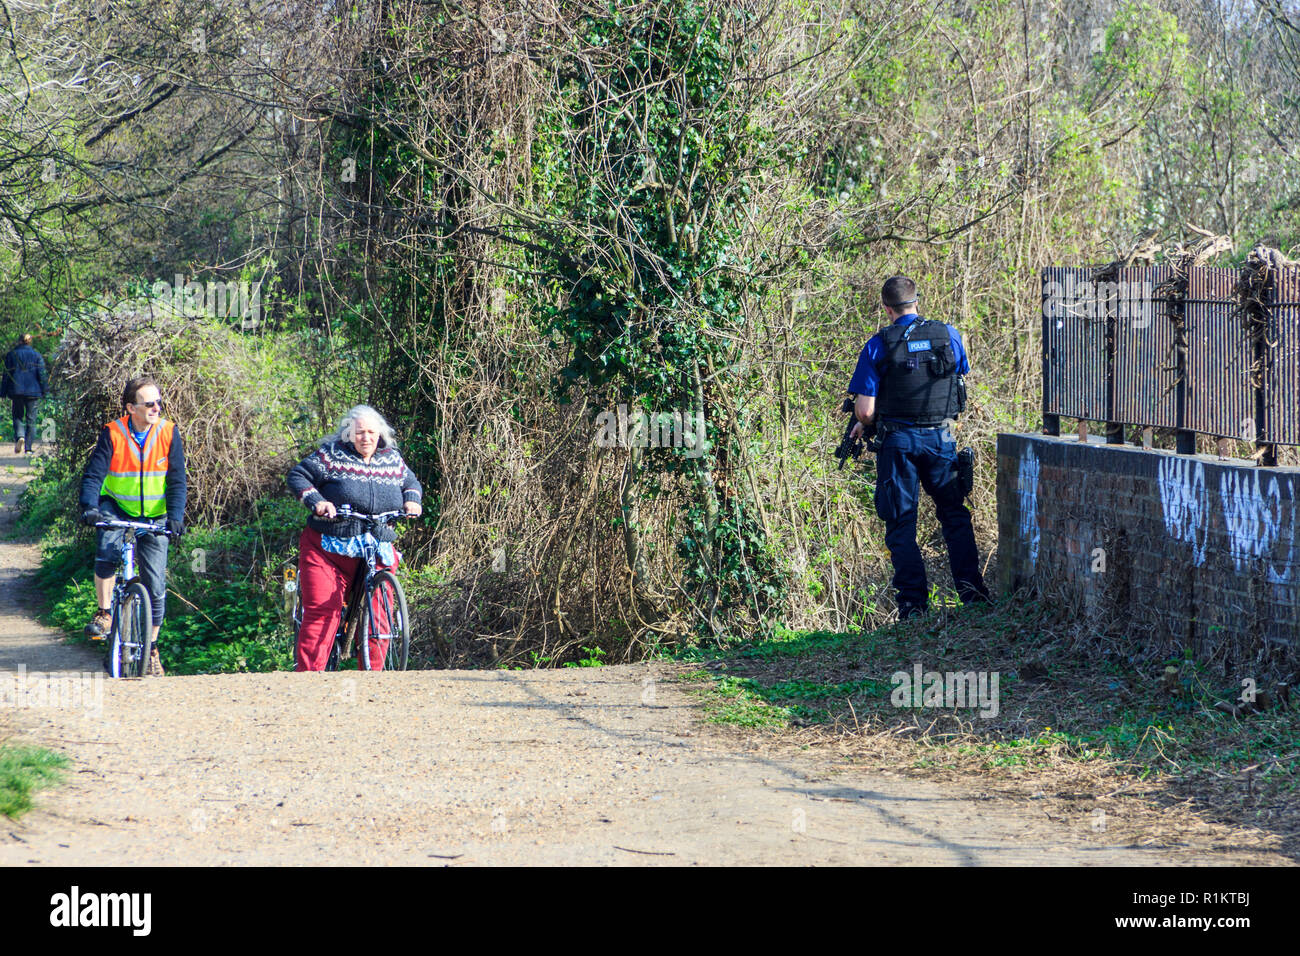 Police Bicycles Stock Photos & Police Bicycles Stock Images